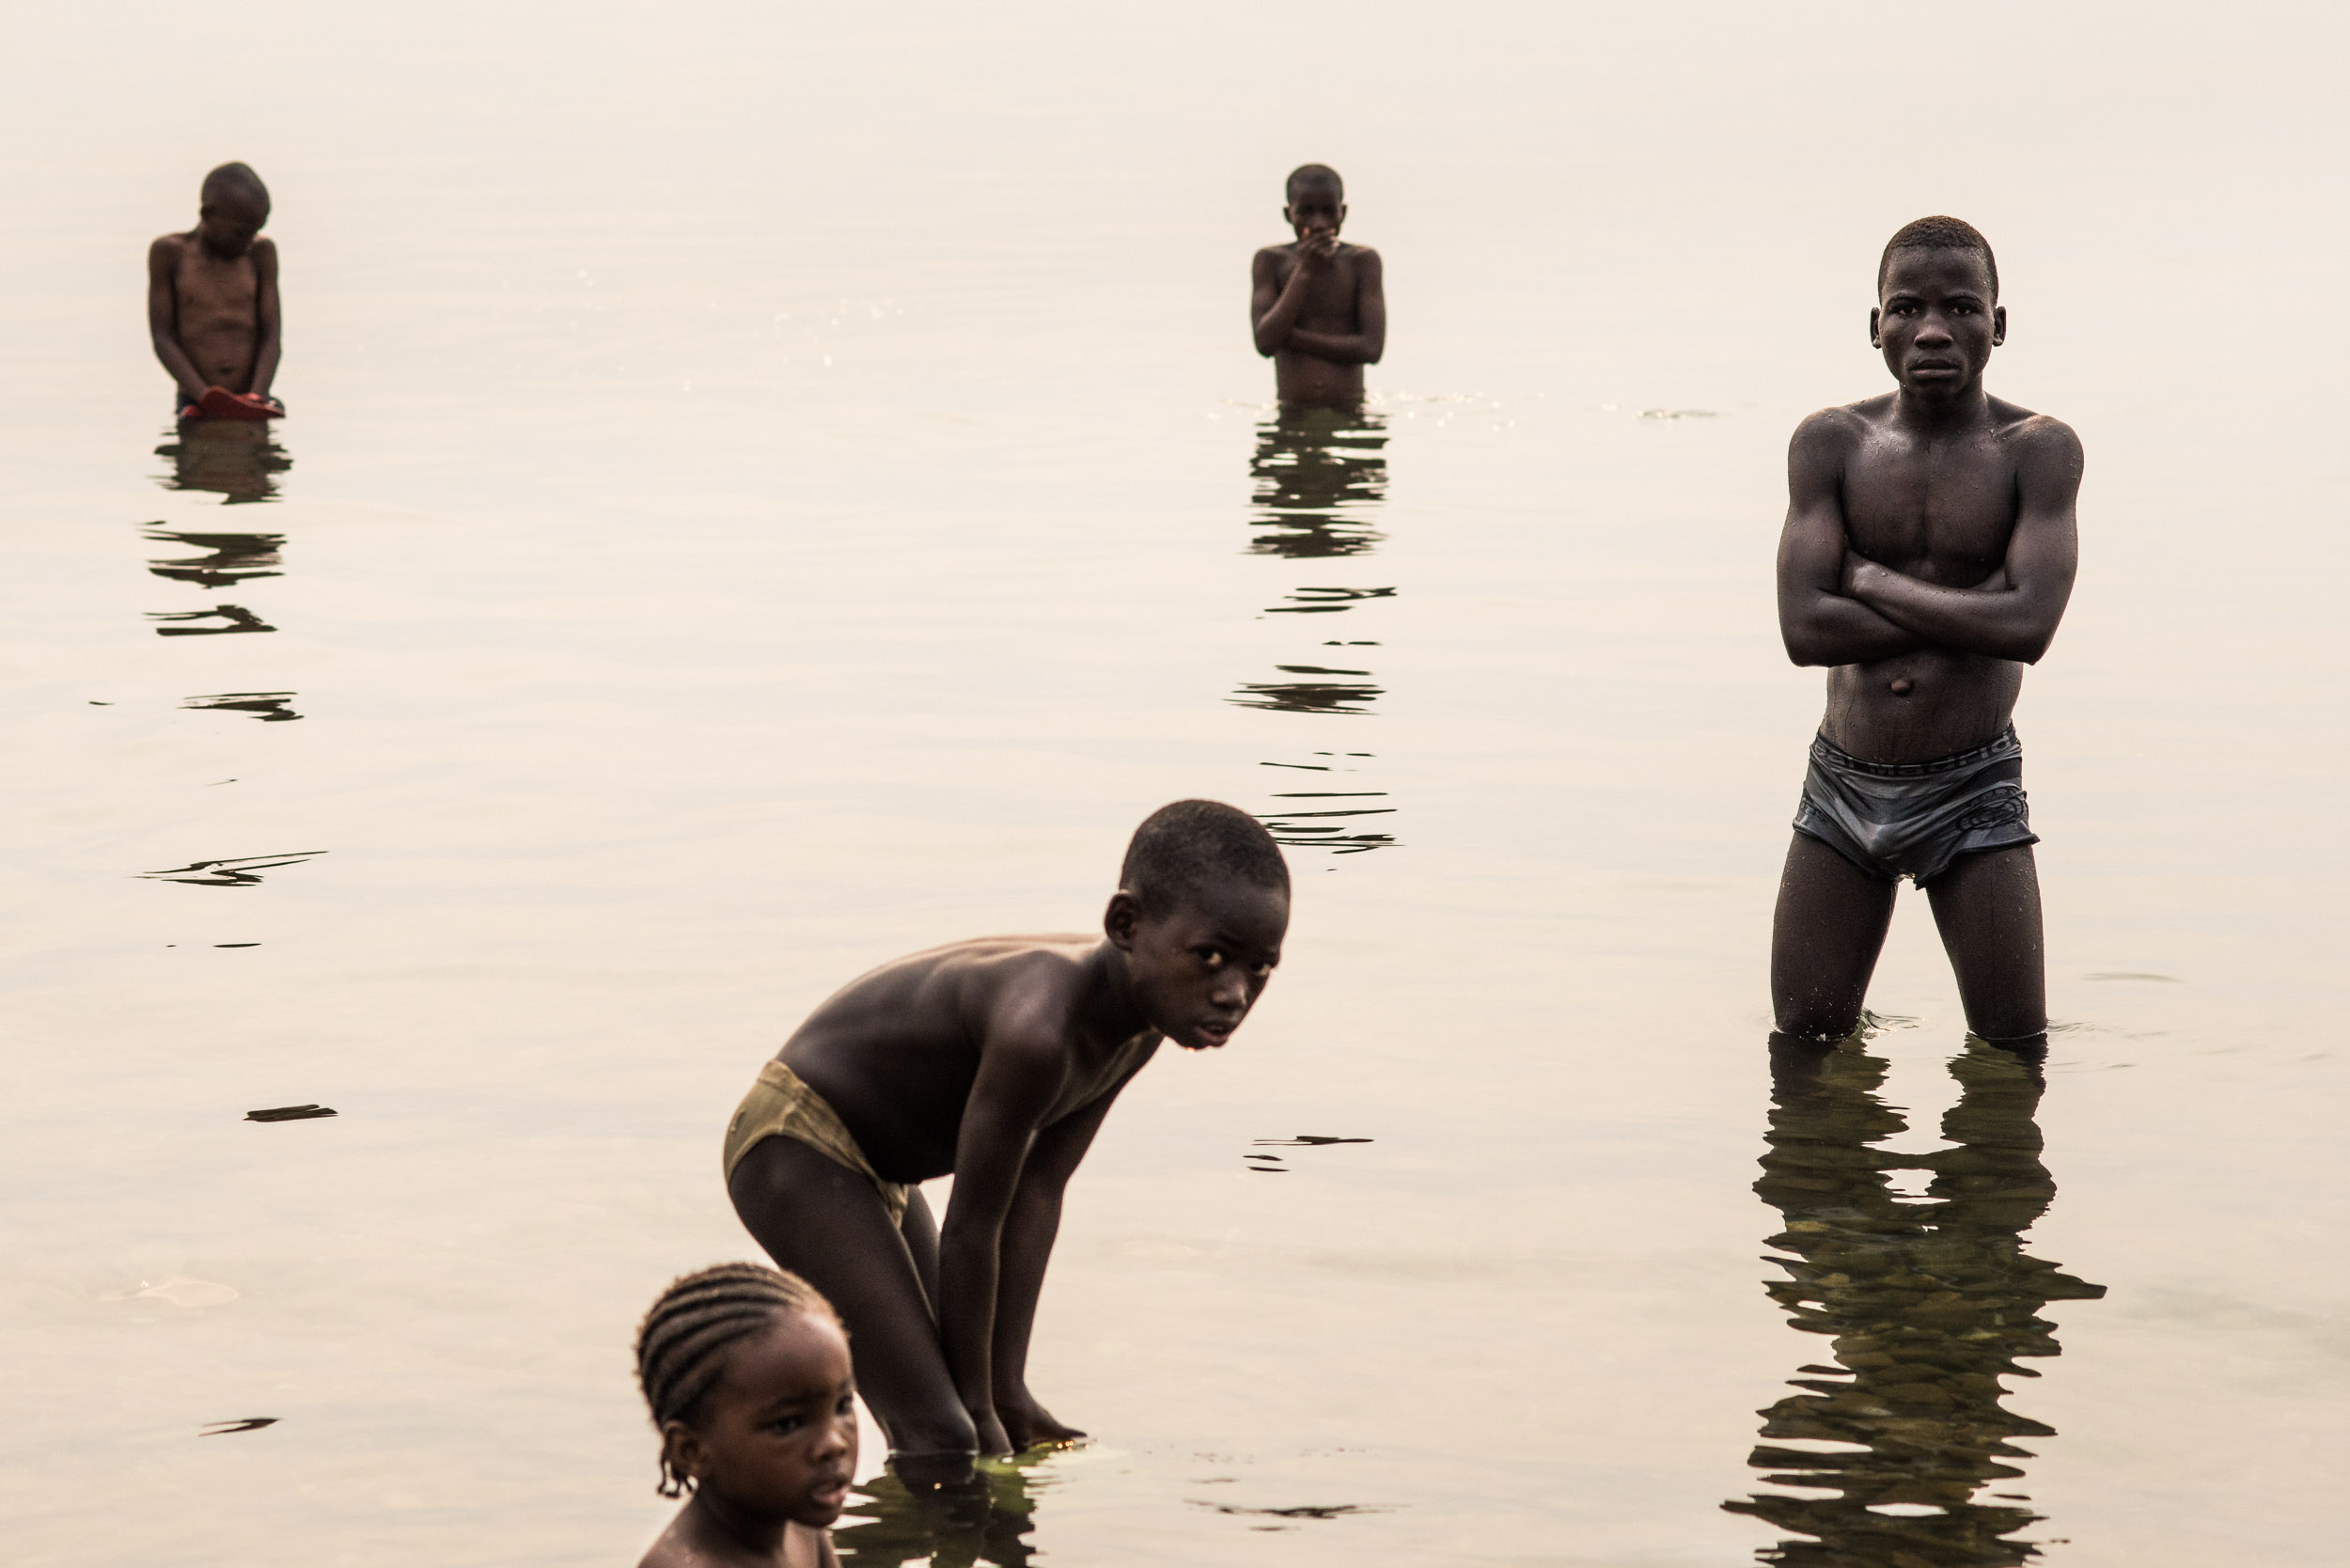 Residents of Uvira bathing near the CCMC in Lake Tanganyika in the dusty gray of a hazy sunrise on a Sunday Morning. Because of donor support, the orphans have access to more services and resources compared to most children outside of the CCC. There are times that it becomes a tension point with the community.